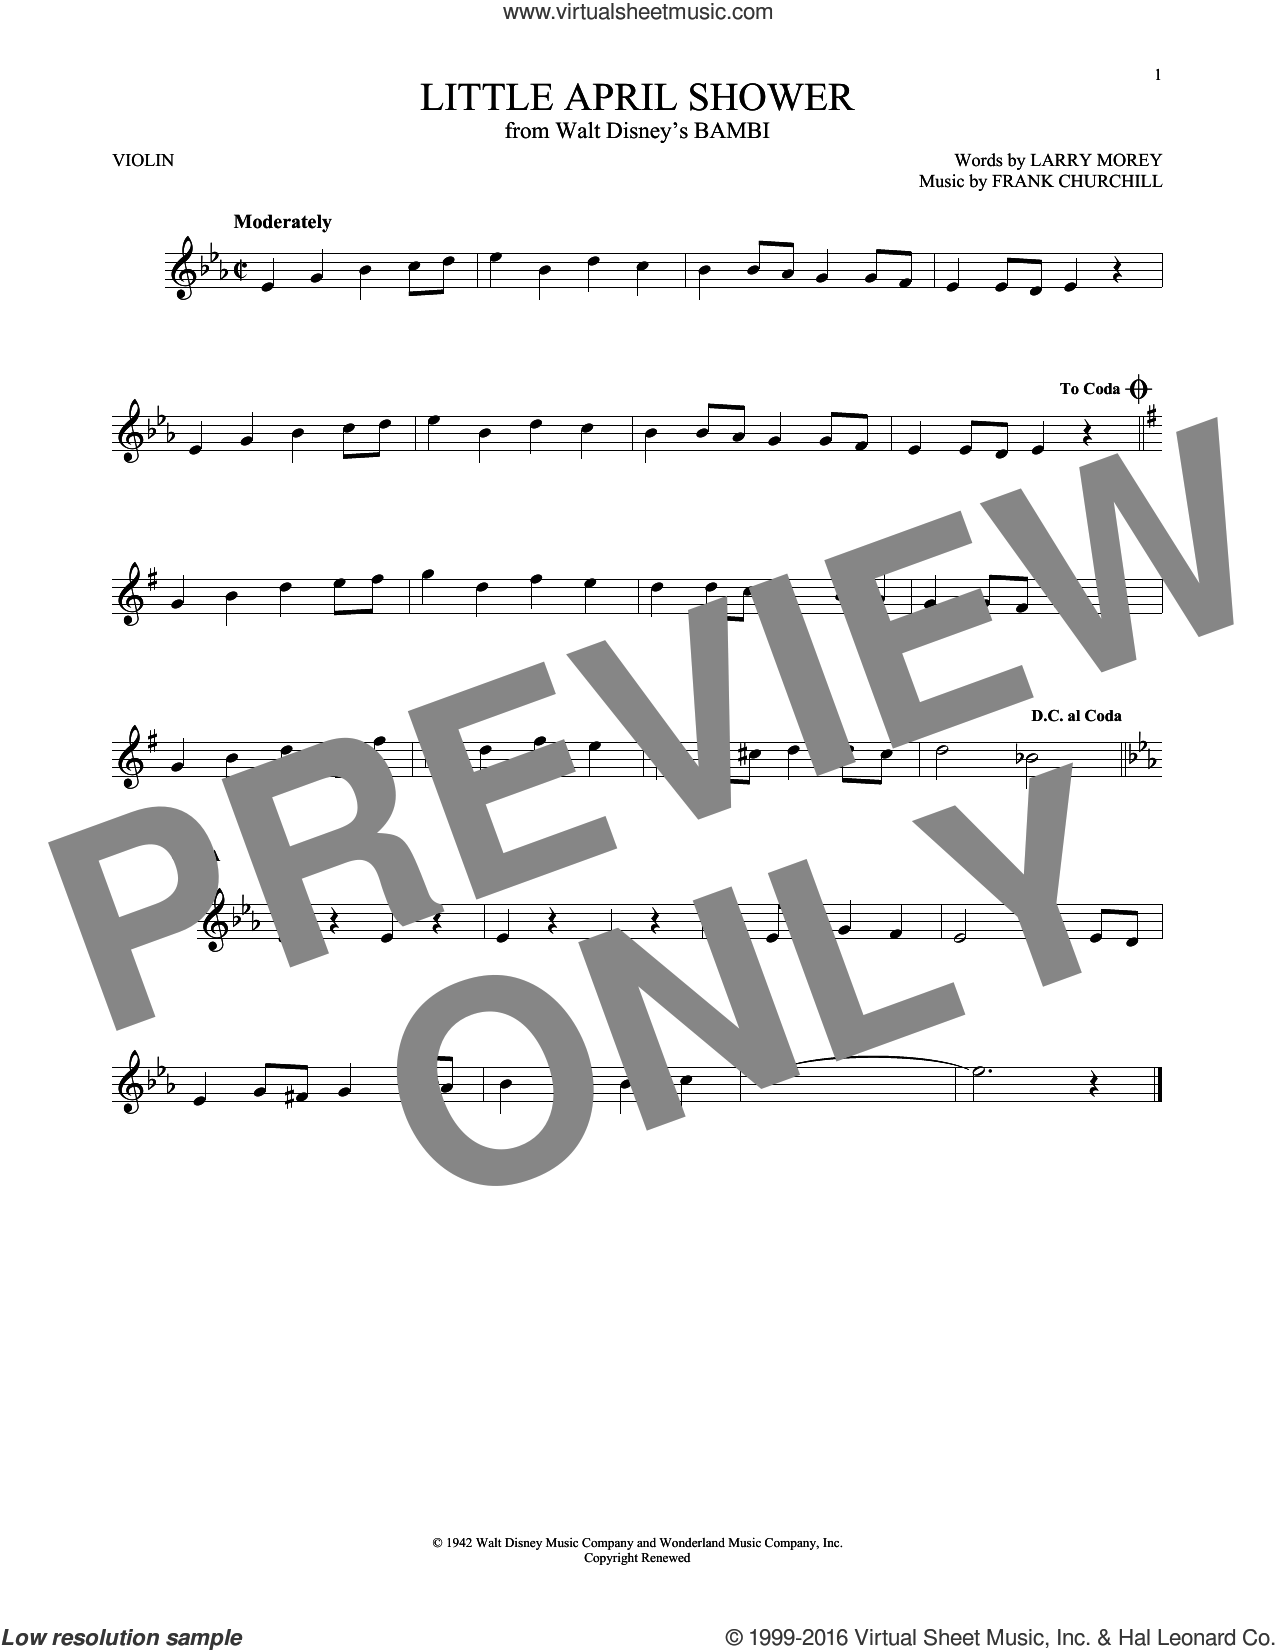 Little April Shower sheet music for violin solo by Larry Morey